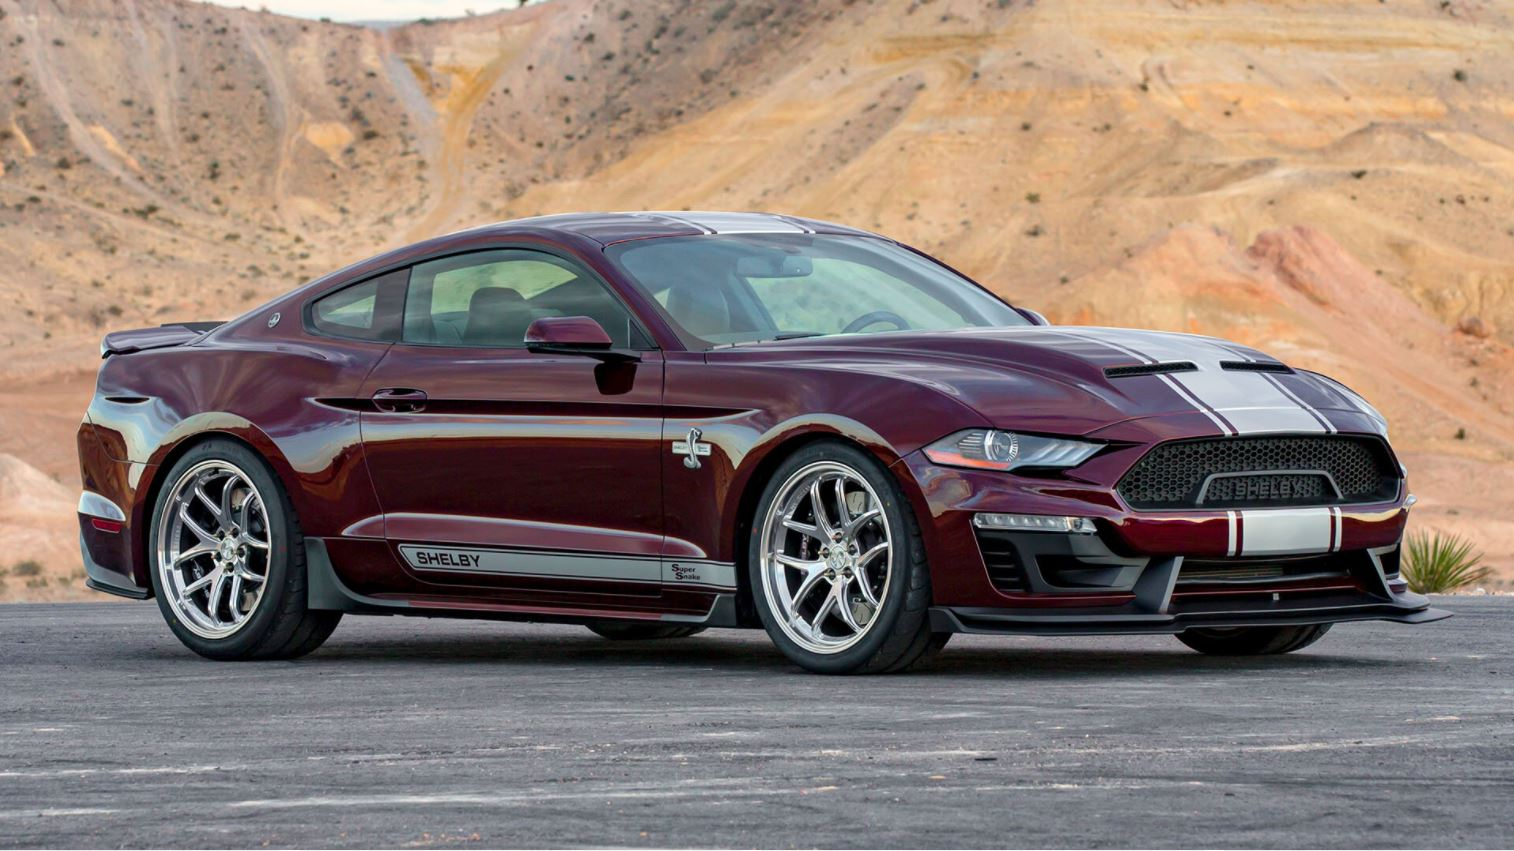 The Mustang Shelby Bold